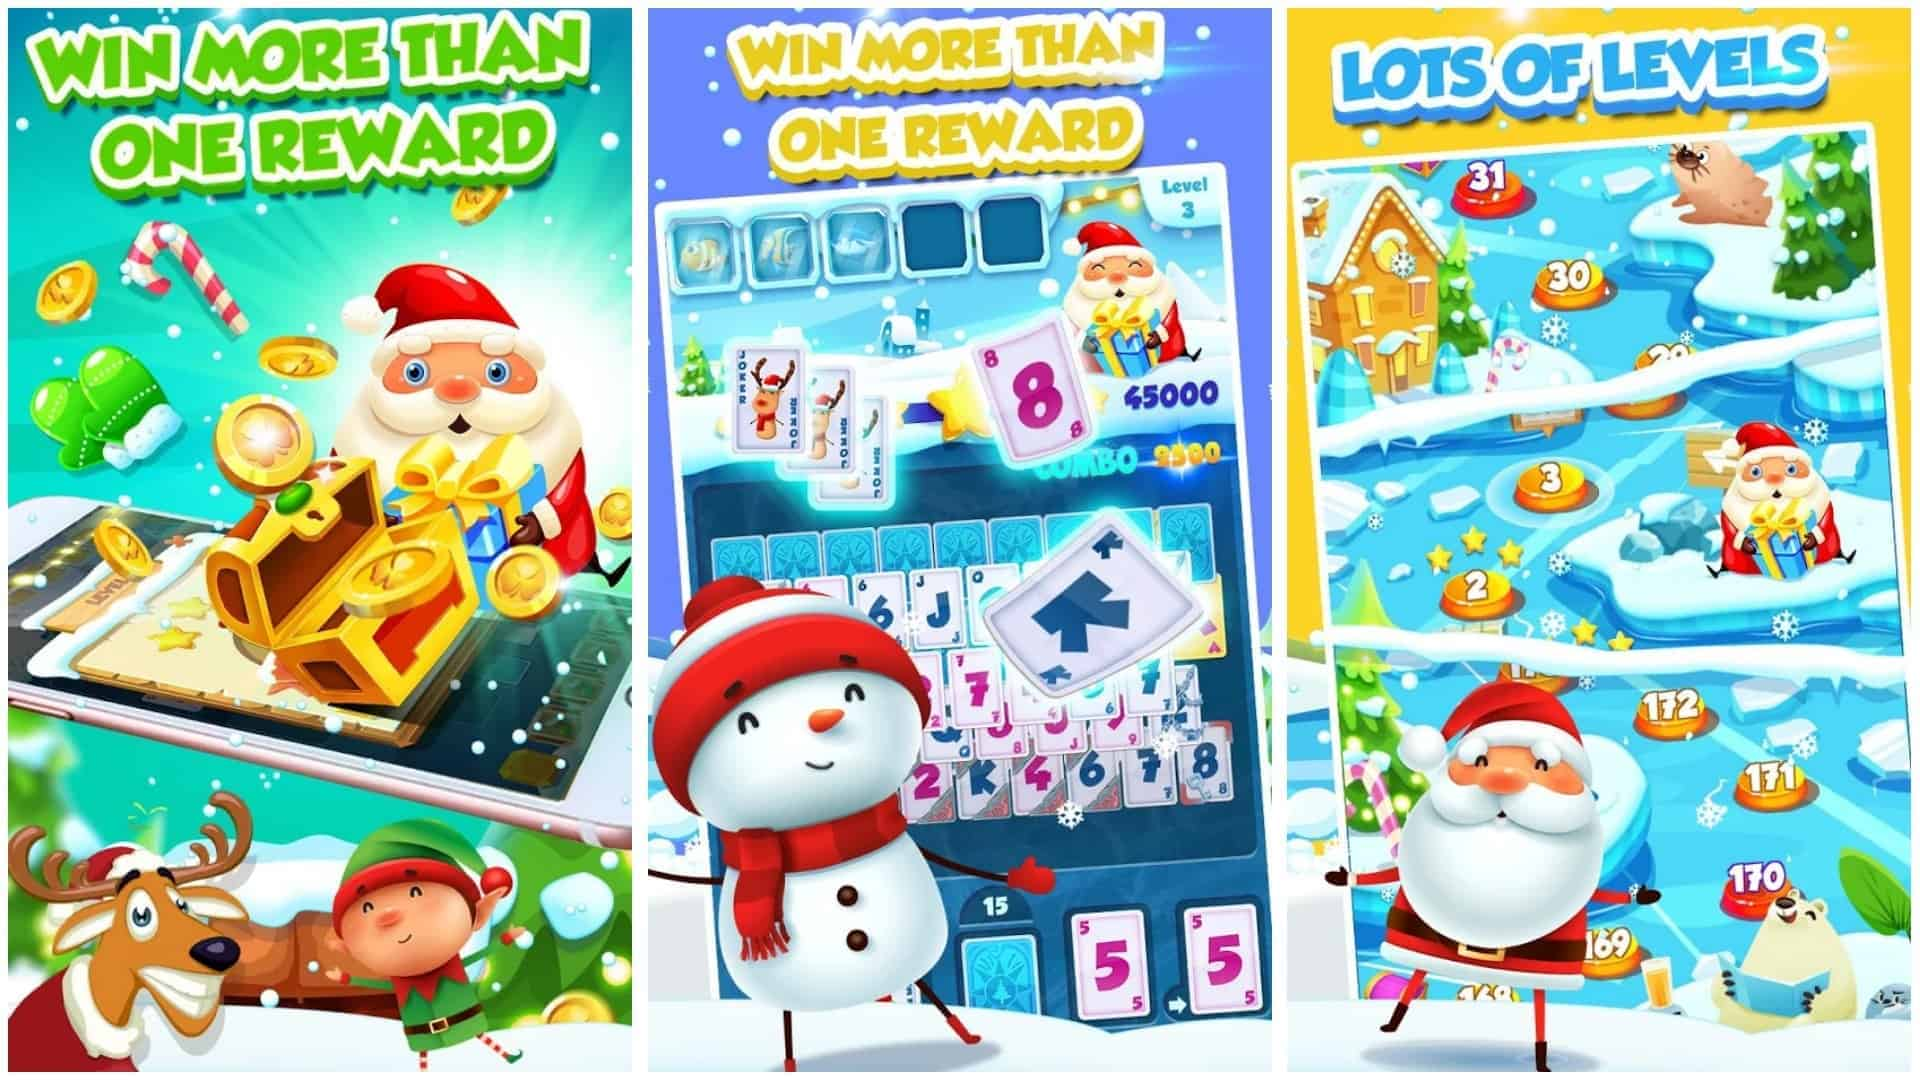 Winter Solitaire app image December 2019